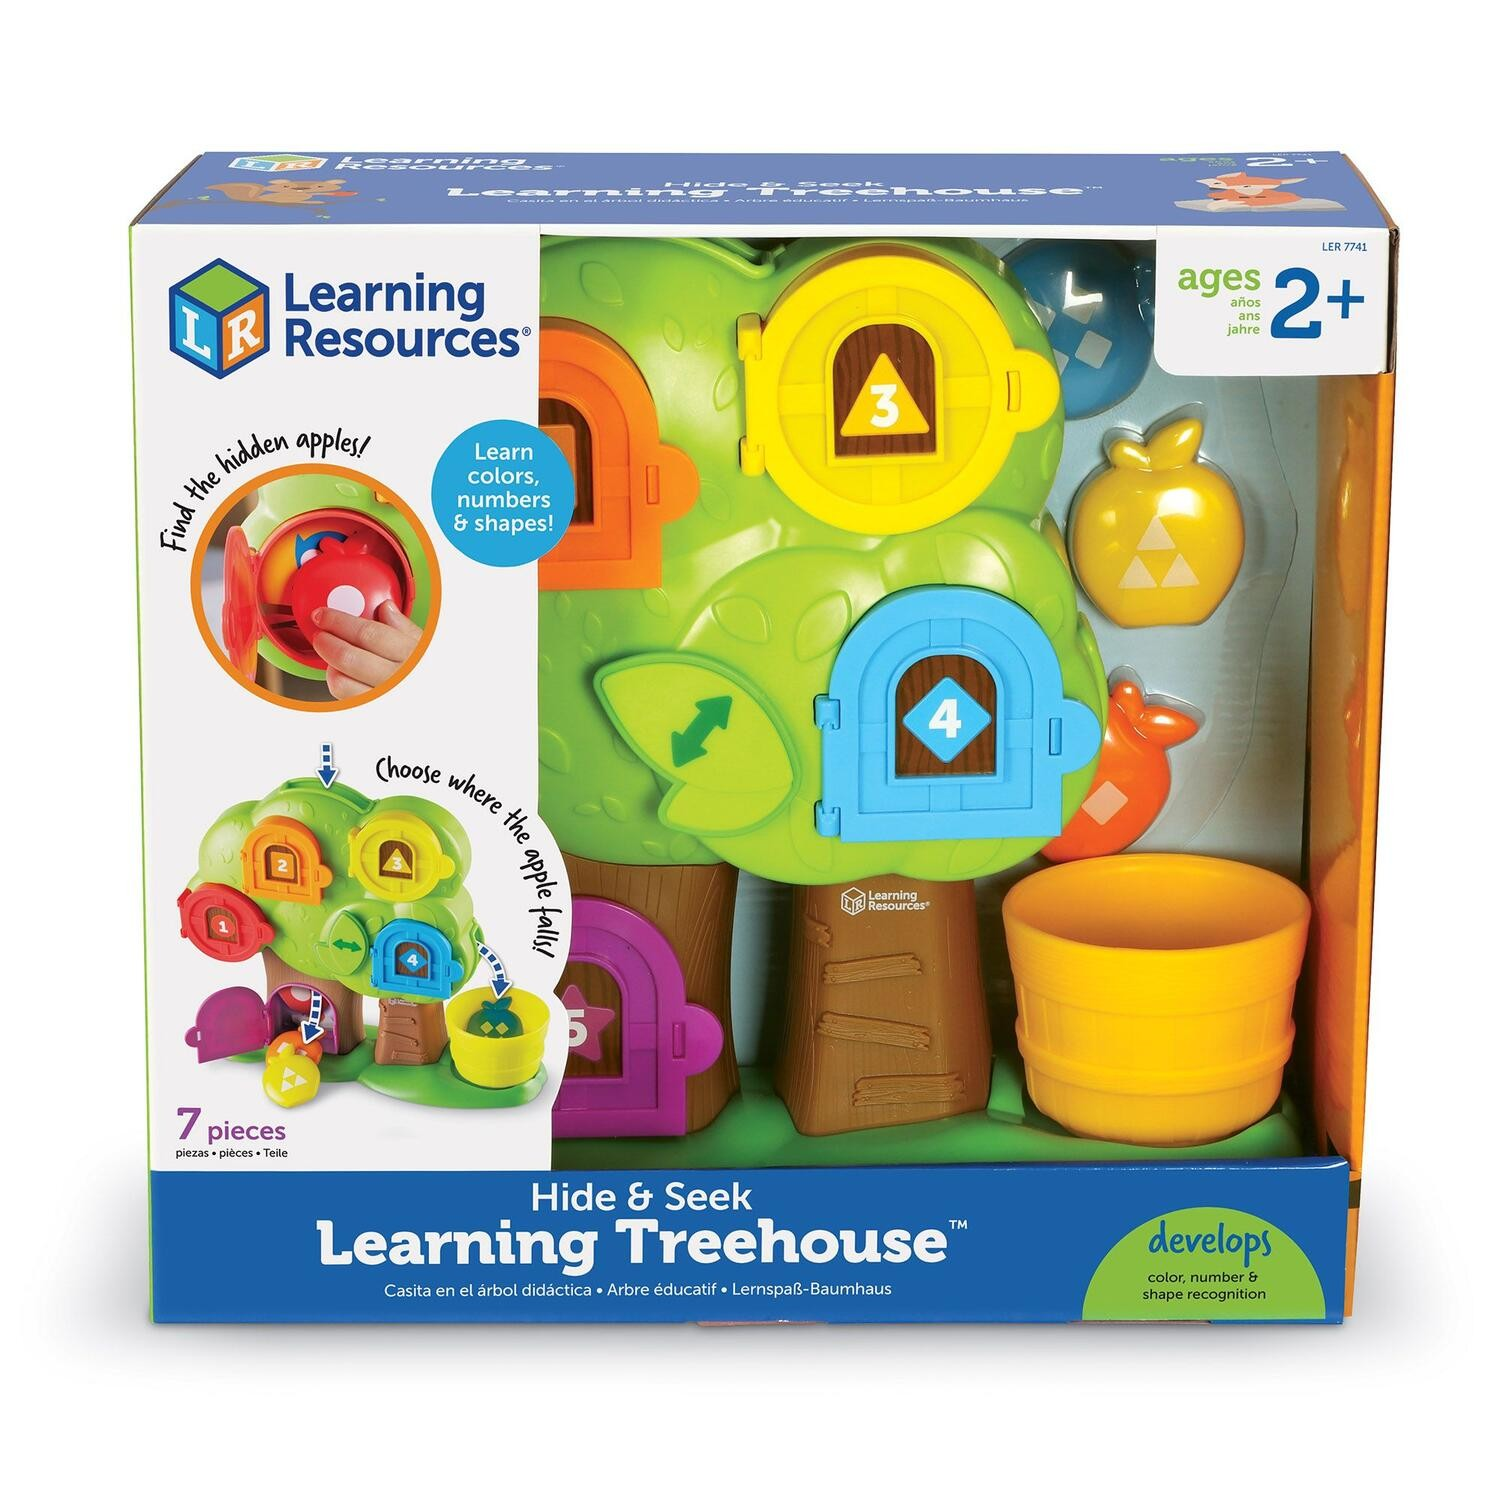 Ceai premium - Tummy in Harmony - honeybush si scortisoara bio, Hari Tea, 10dz